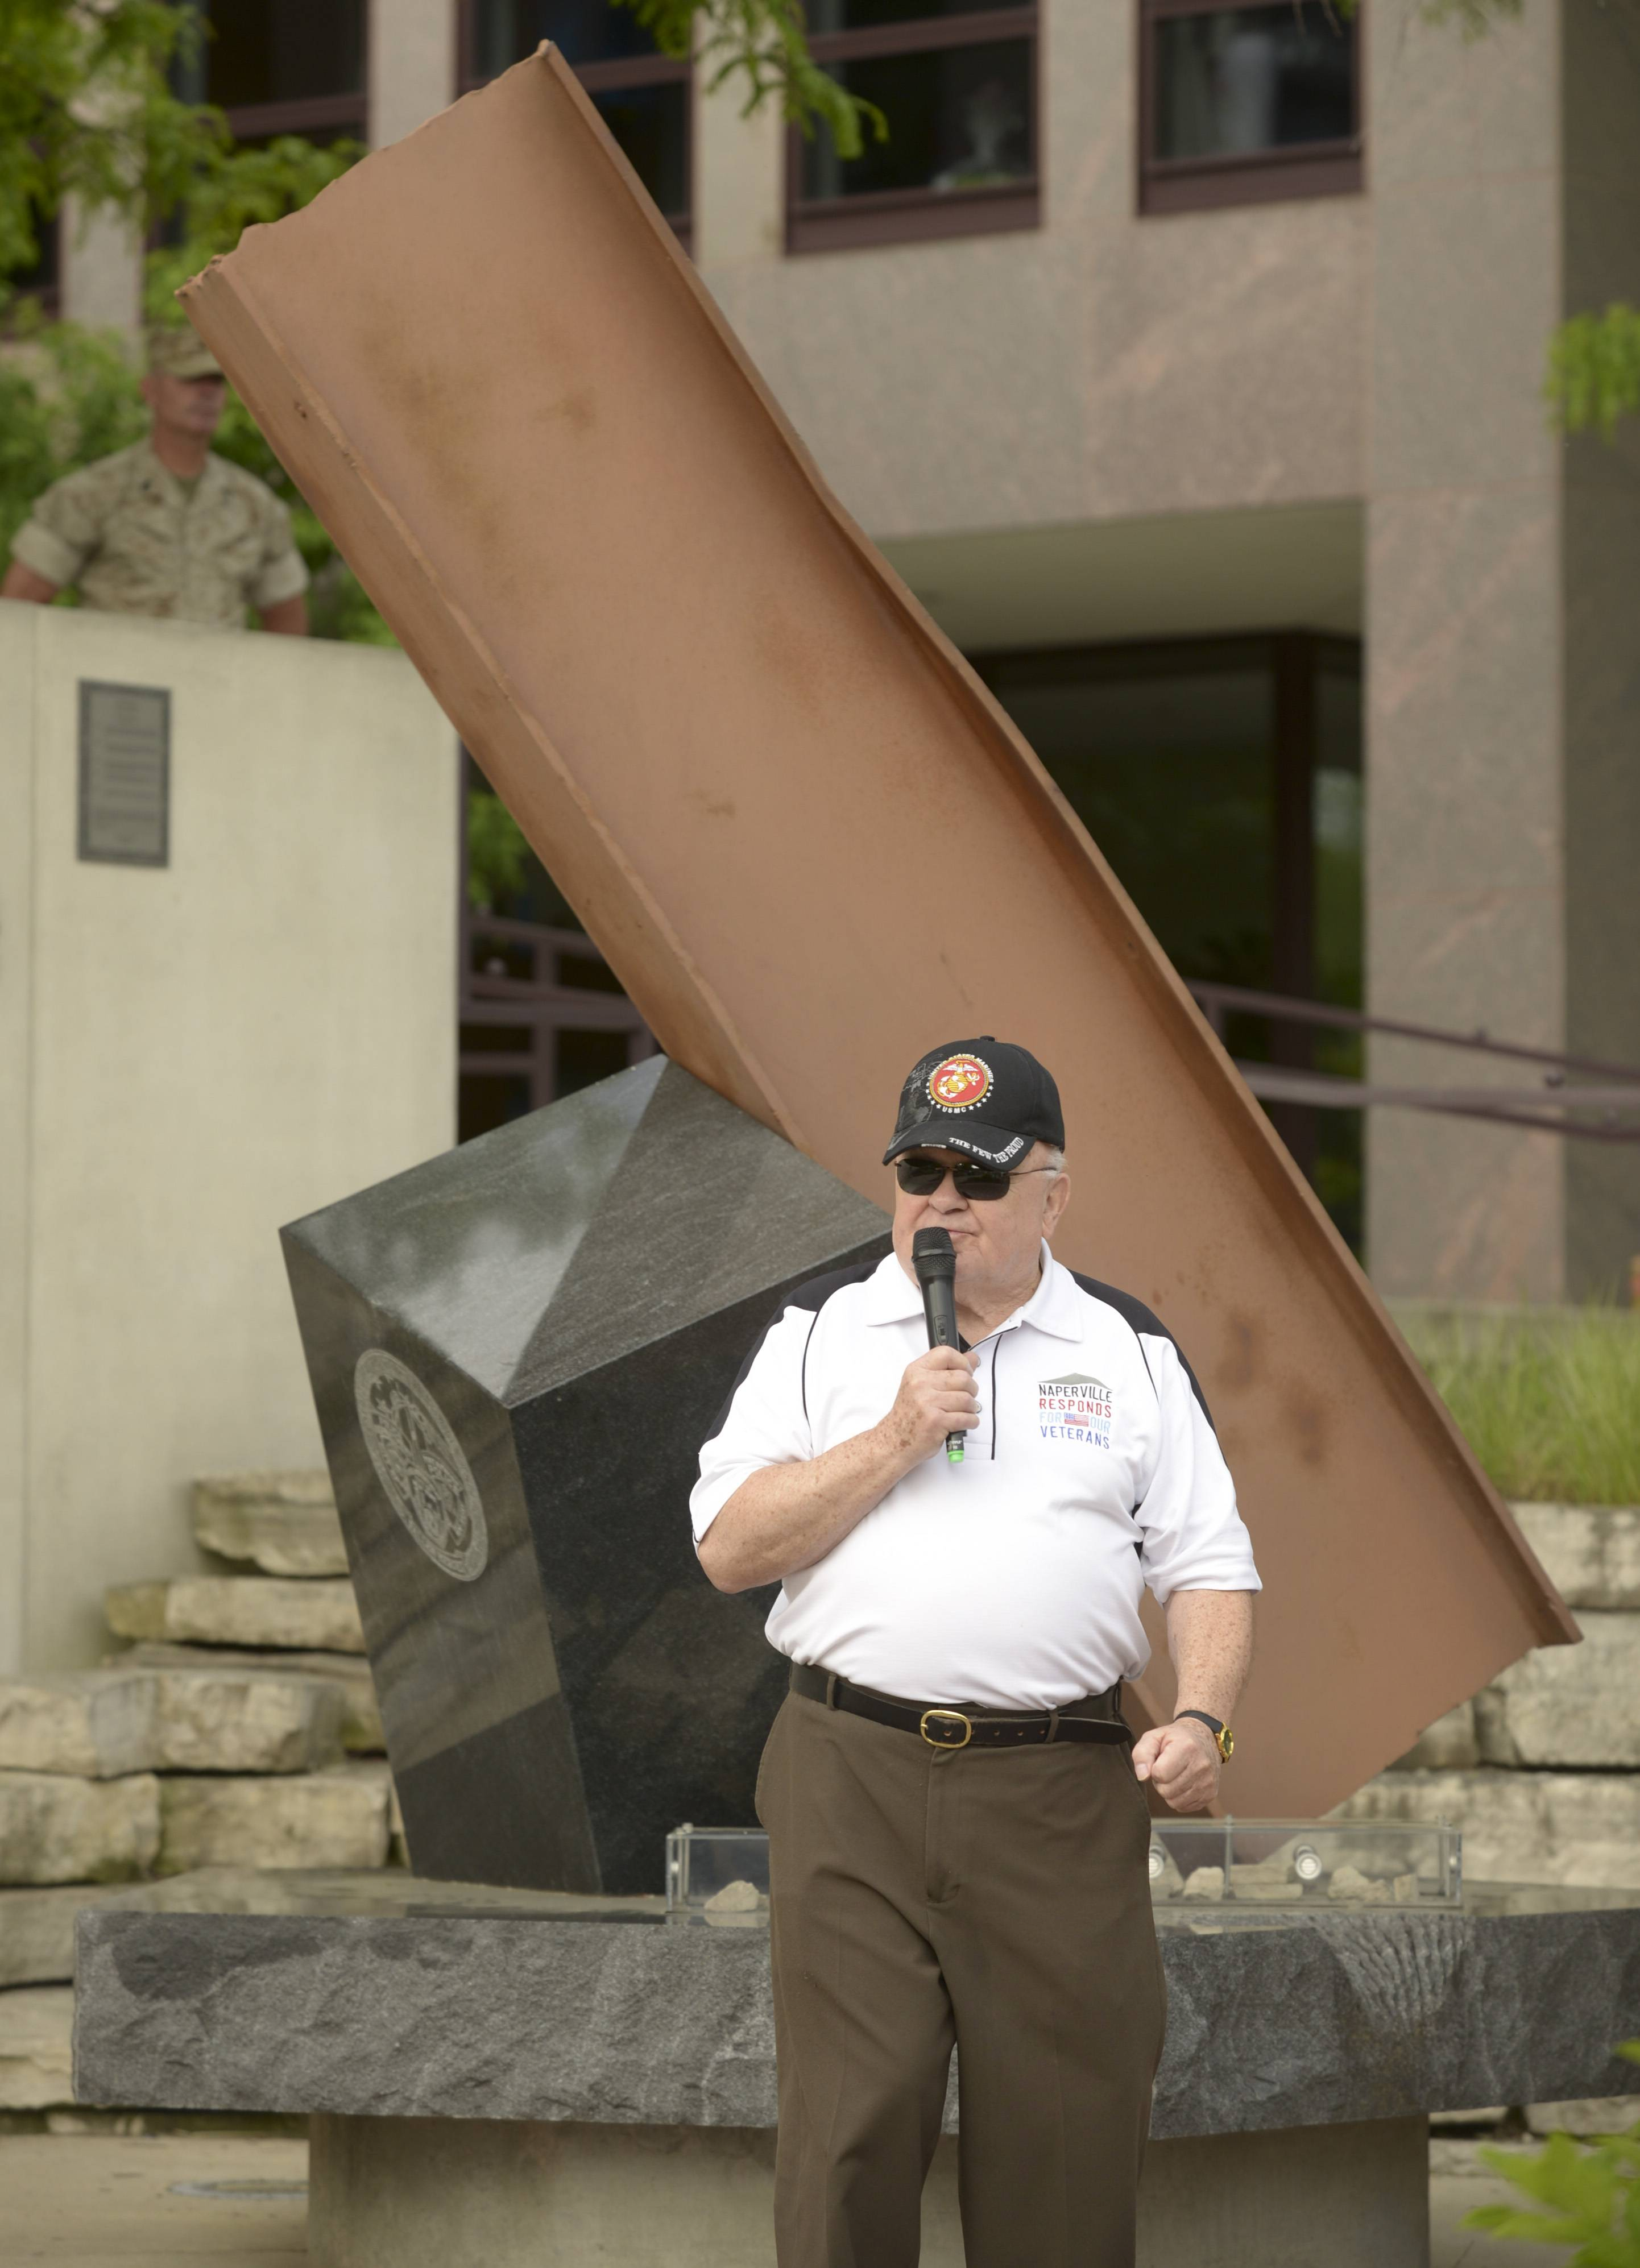 Naperville Mayor George Pradel, a Marine veteran, addresses those attending the city's Memorial Day service Monday morning at the Cmdr. Dan Shanower Sept. 11 memorial.